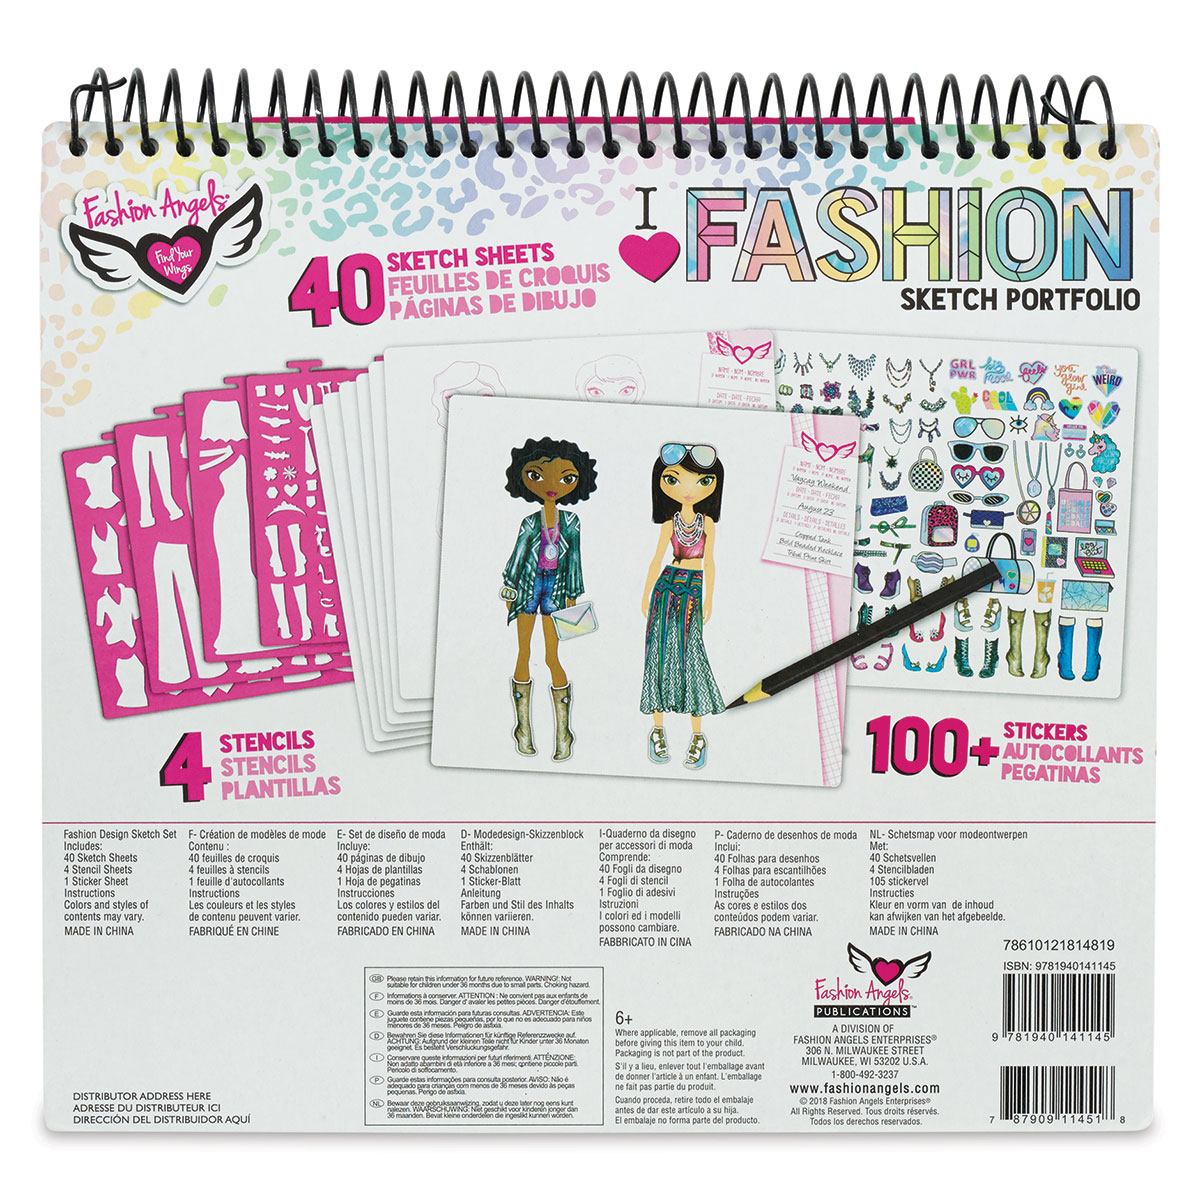 Fashion Angels Fashion Design Sketch Portfolio Blick Art Materials